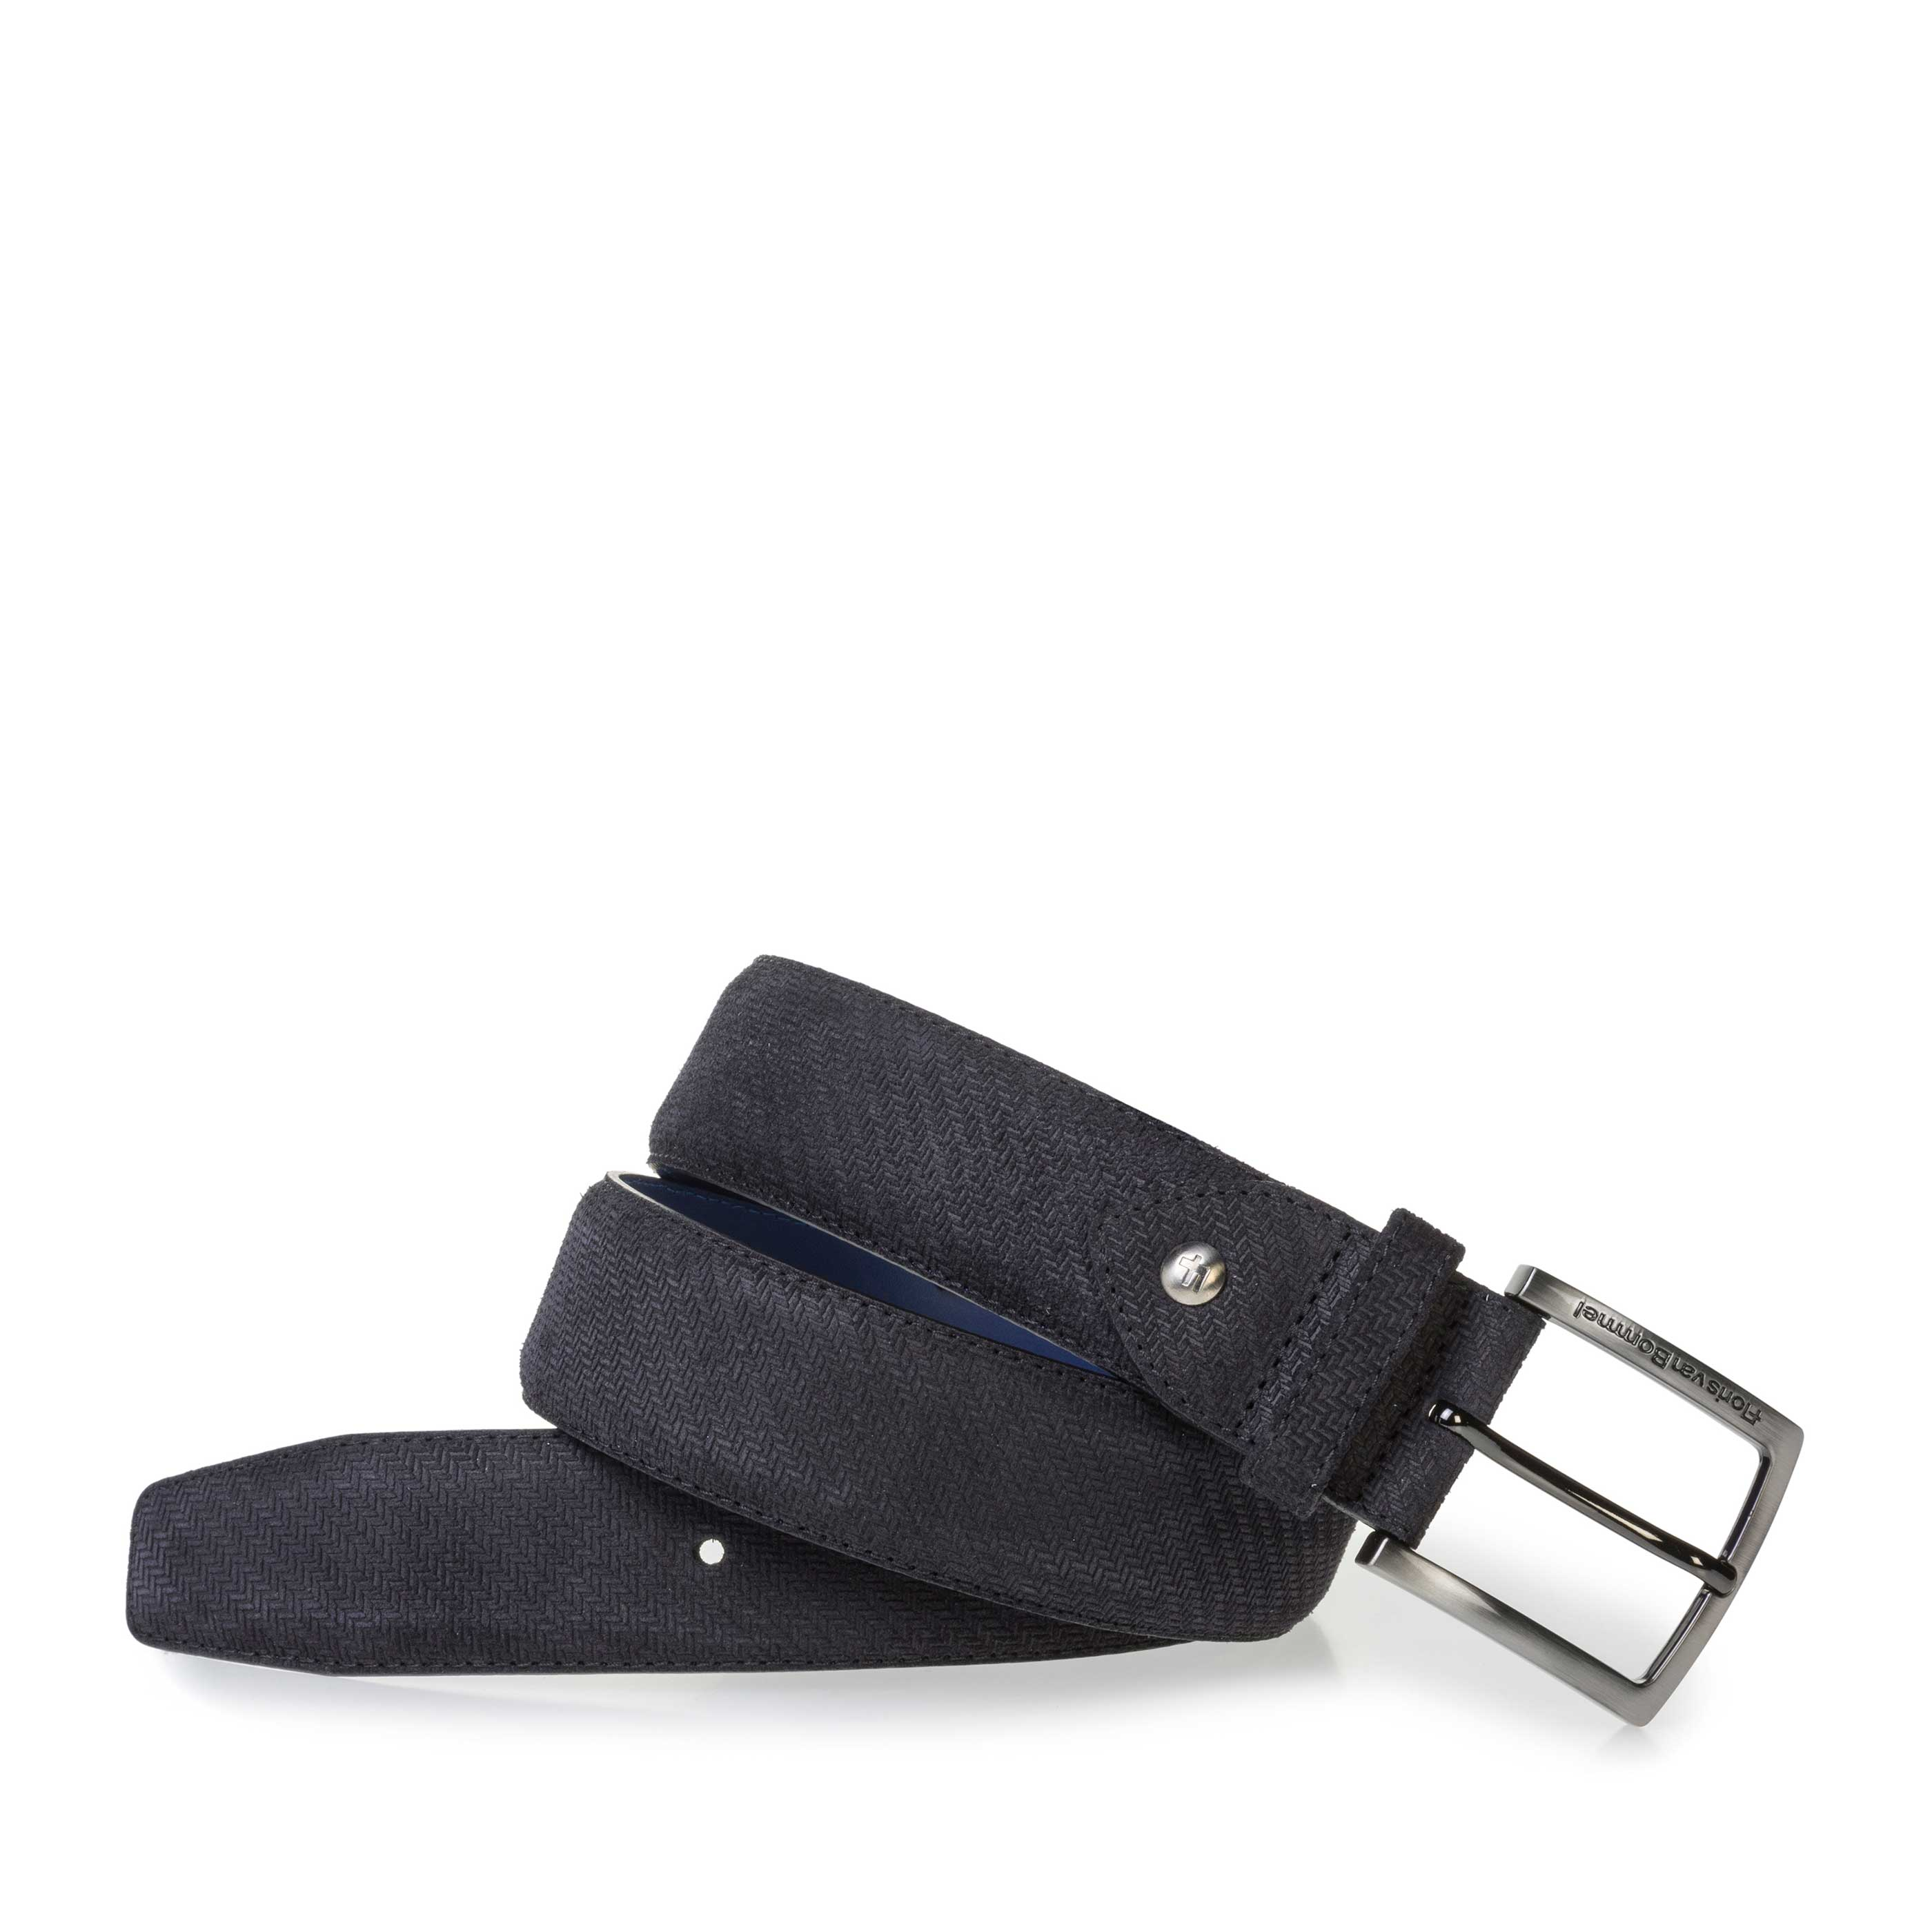 75202/46 - Black suede leather belt with print